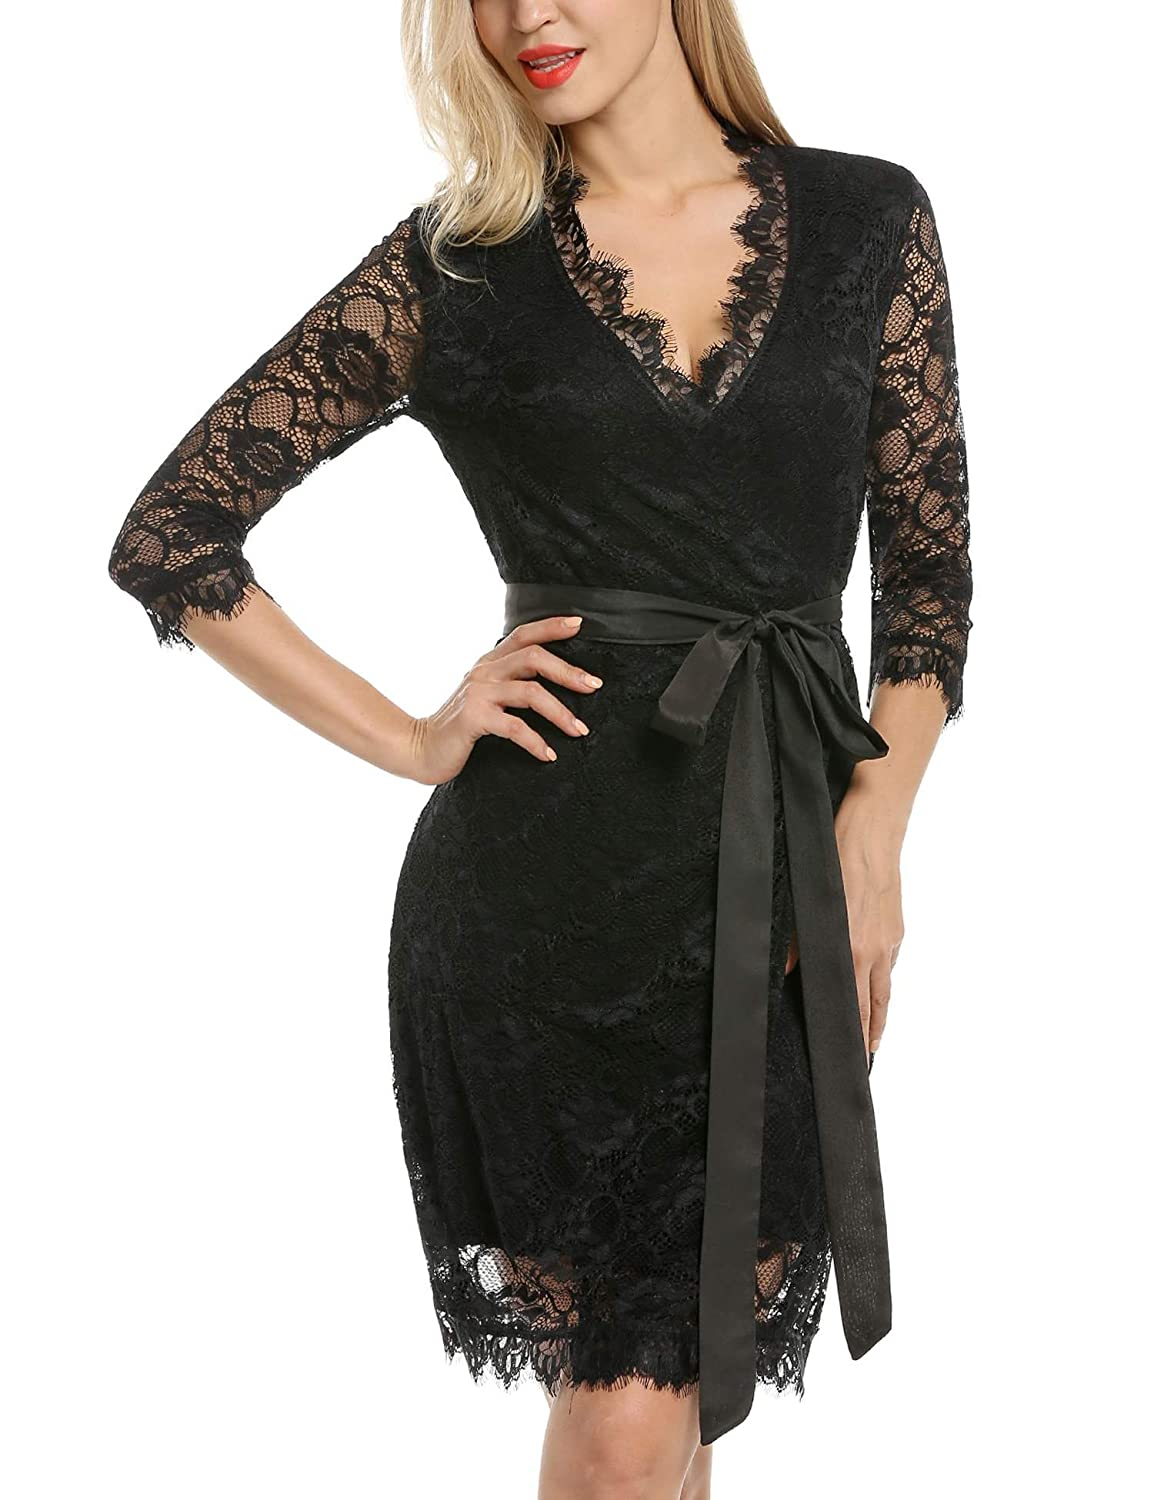 ANGVNS Women's V Neck 3/4 Sleeve Wrap-Front Lace Cocktail Midi Dress with Belt